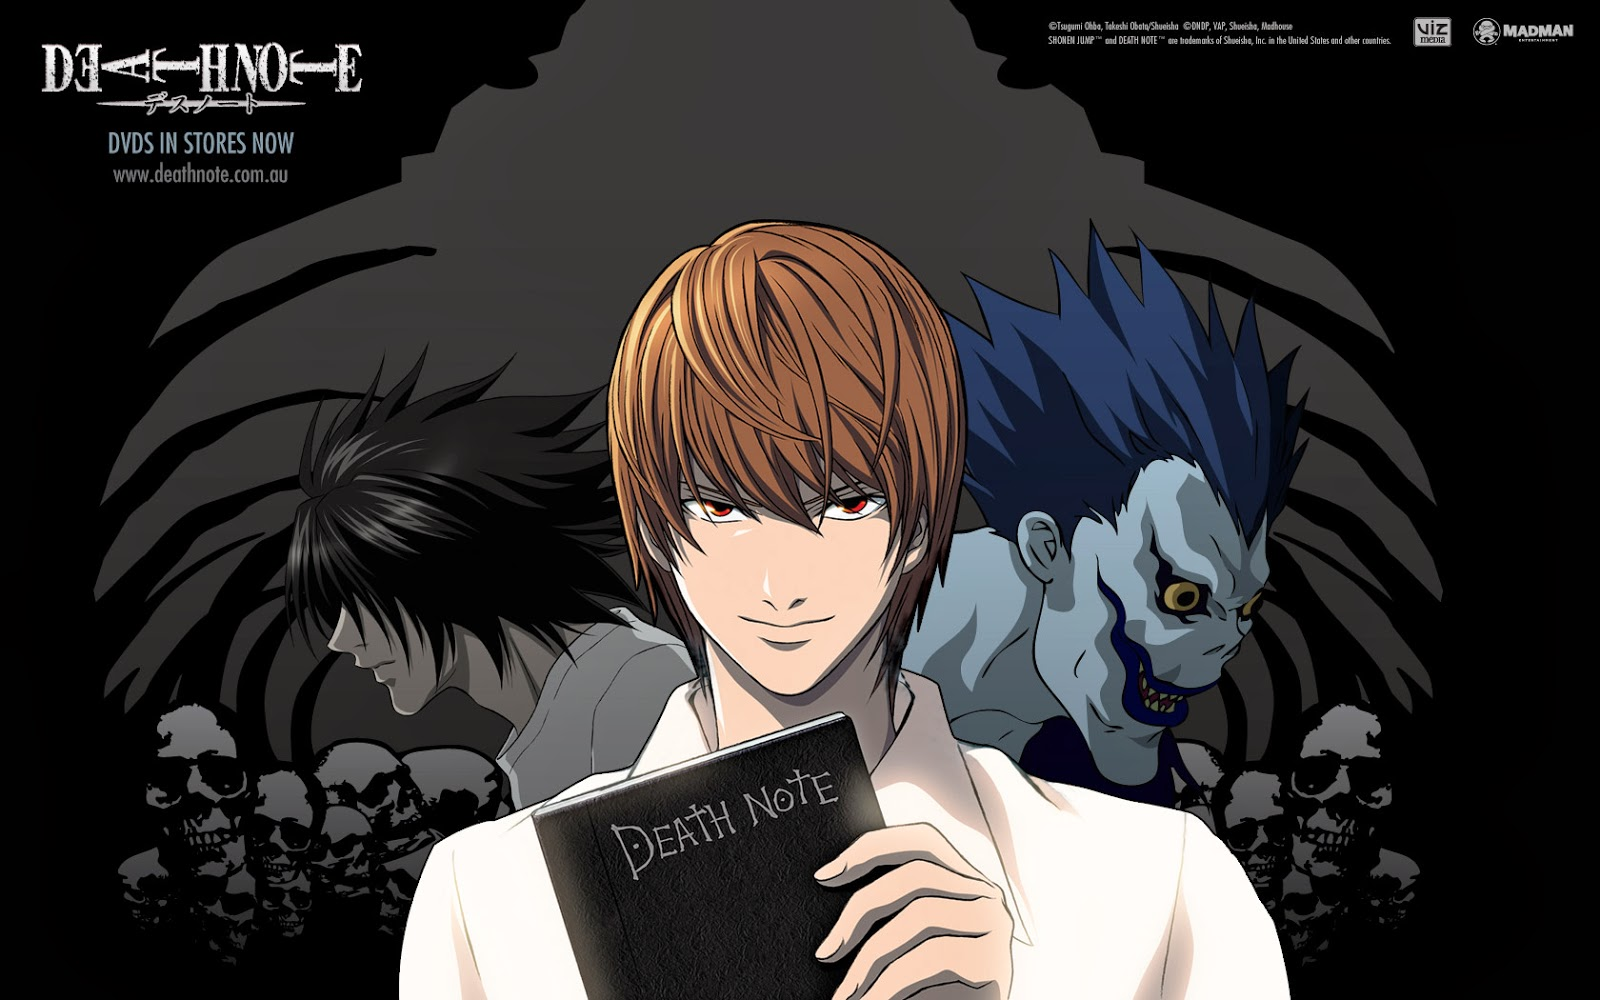 Gamble (Death Note episode)